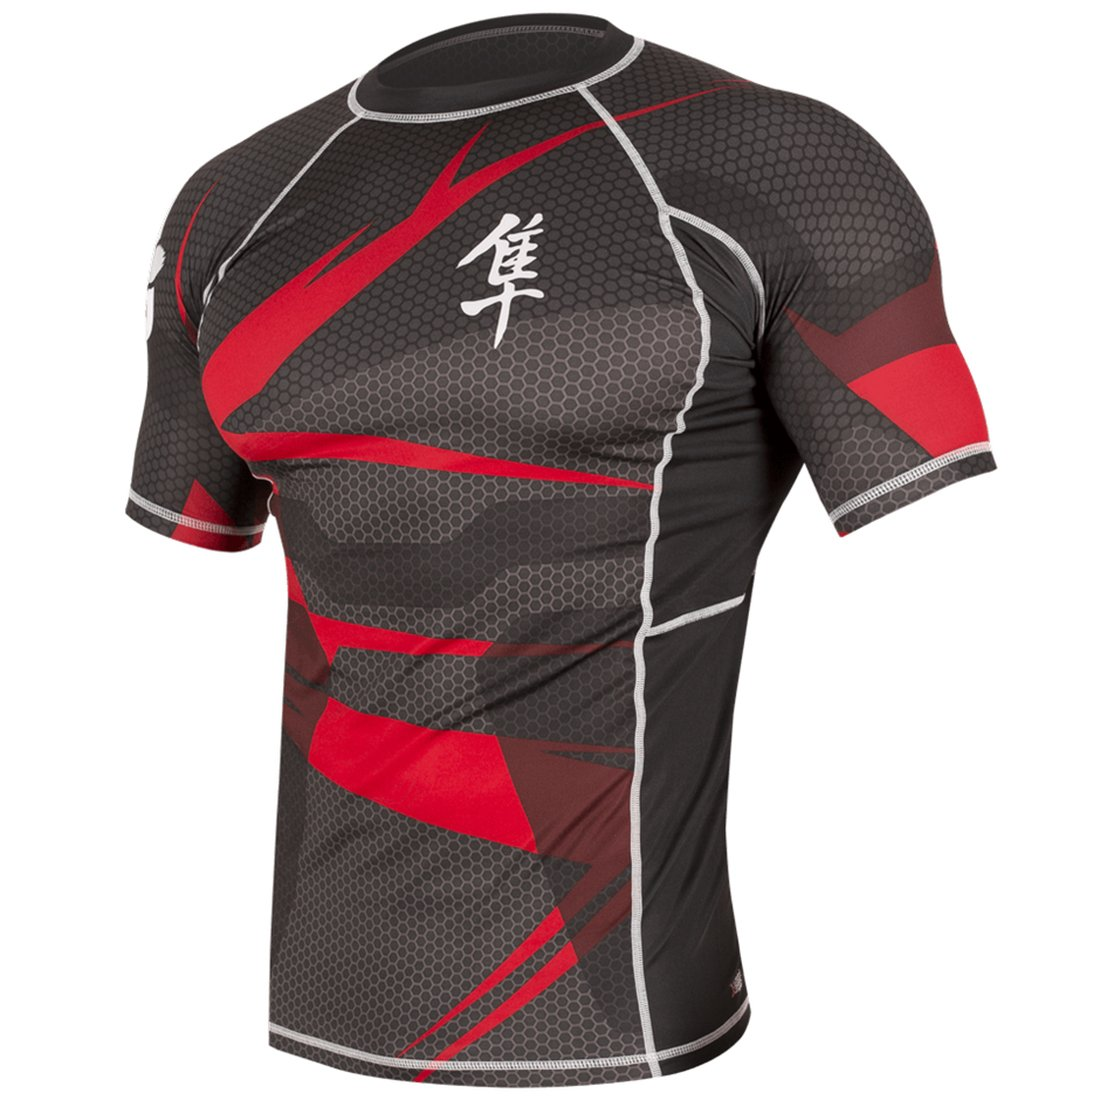 Hayabusa Metaru 47 Silver Rashguard Shortsleeve (Black/Red, Small)